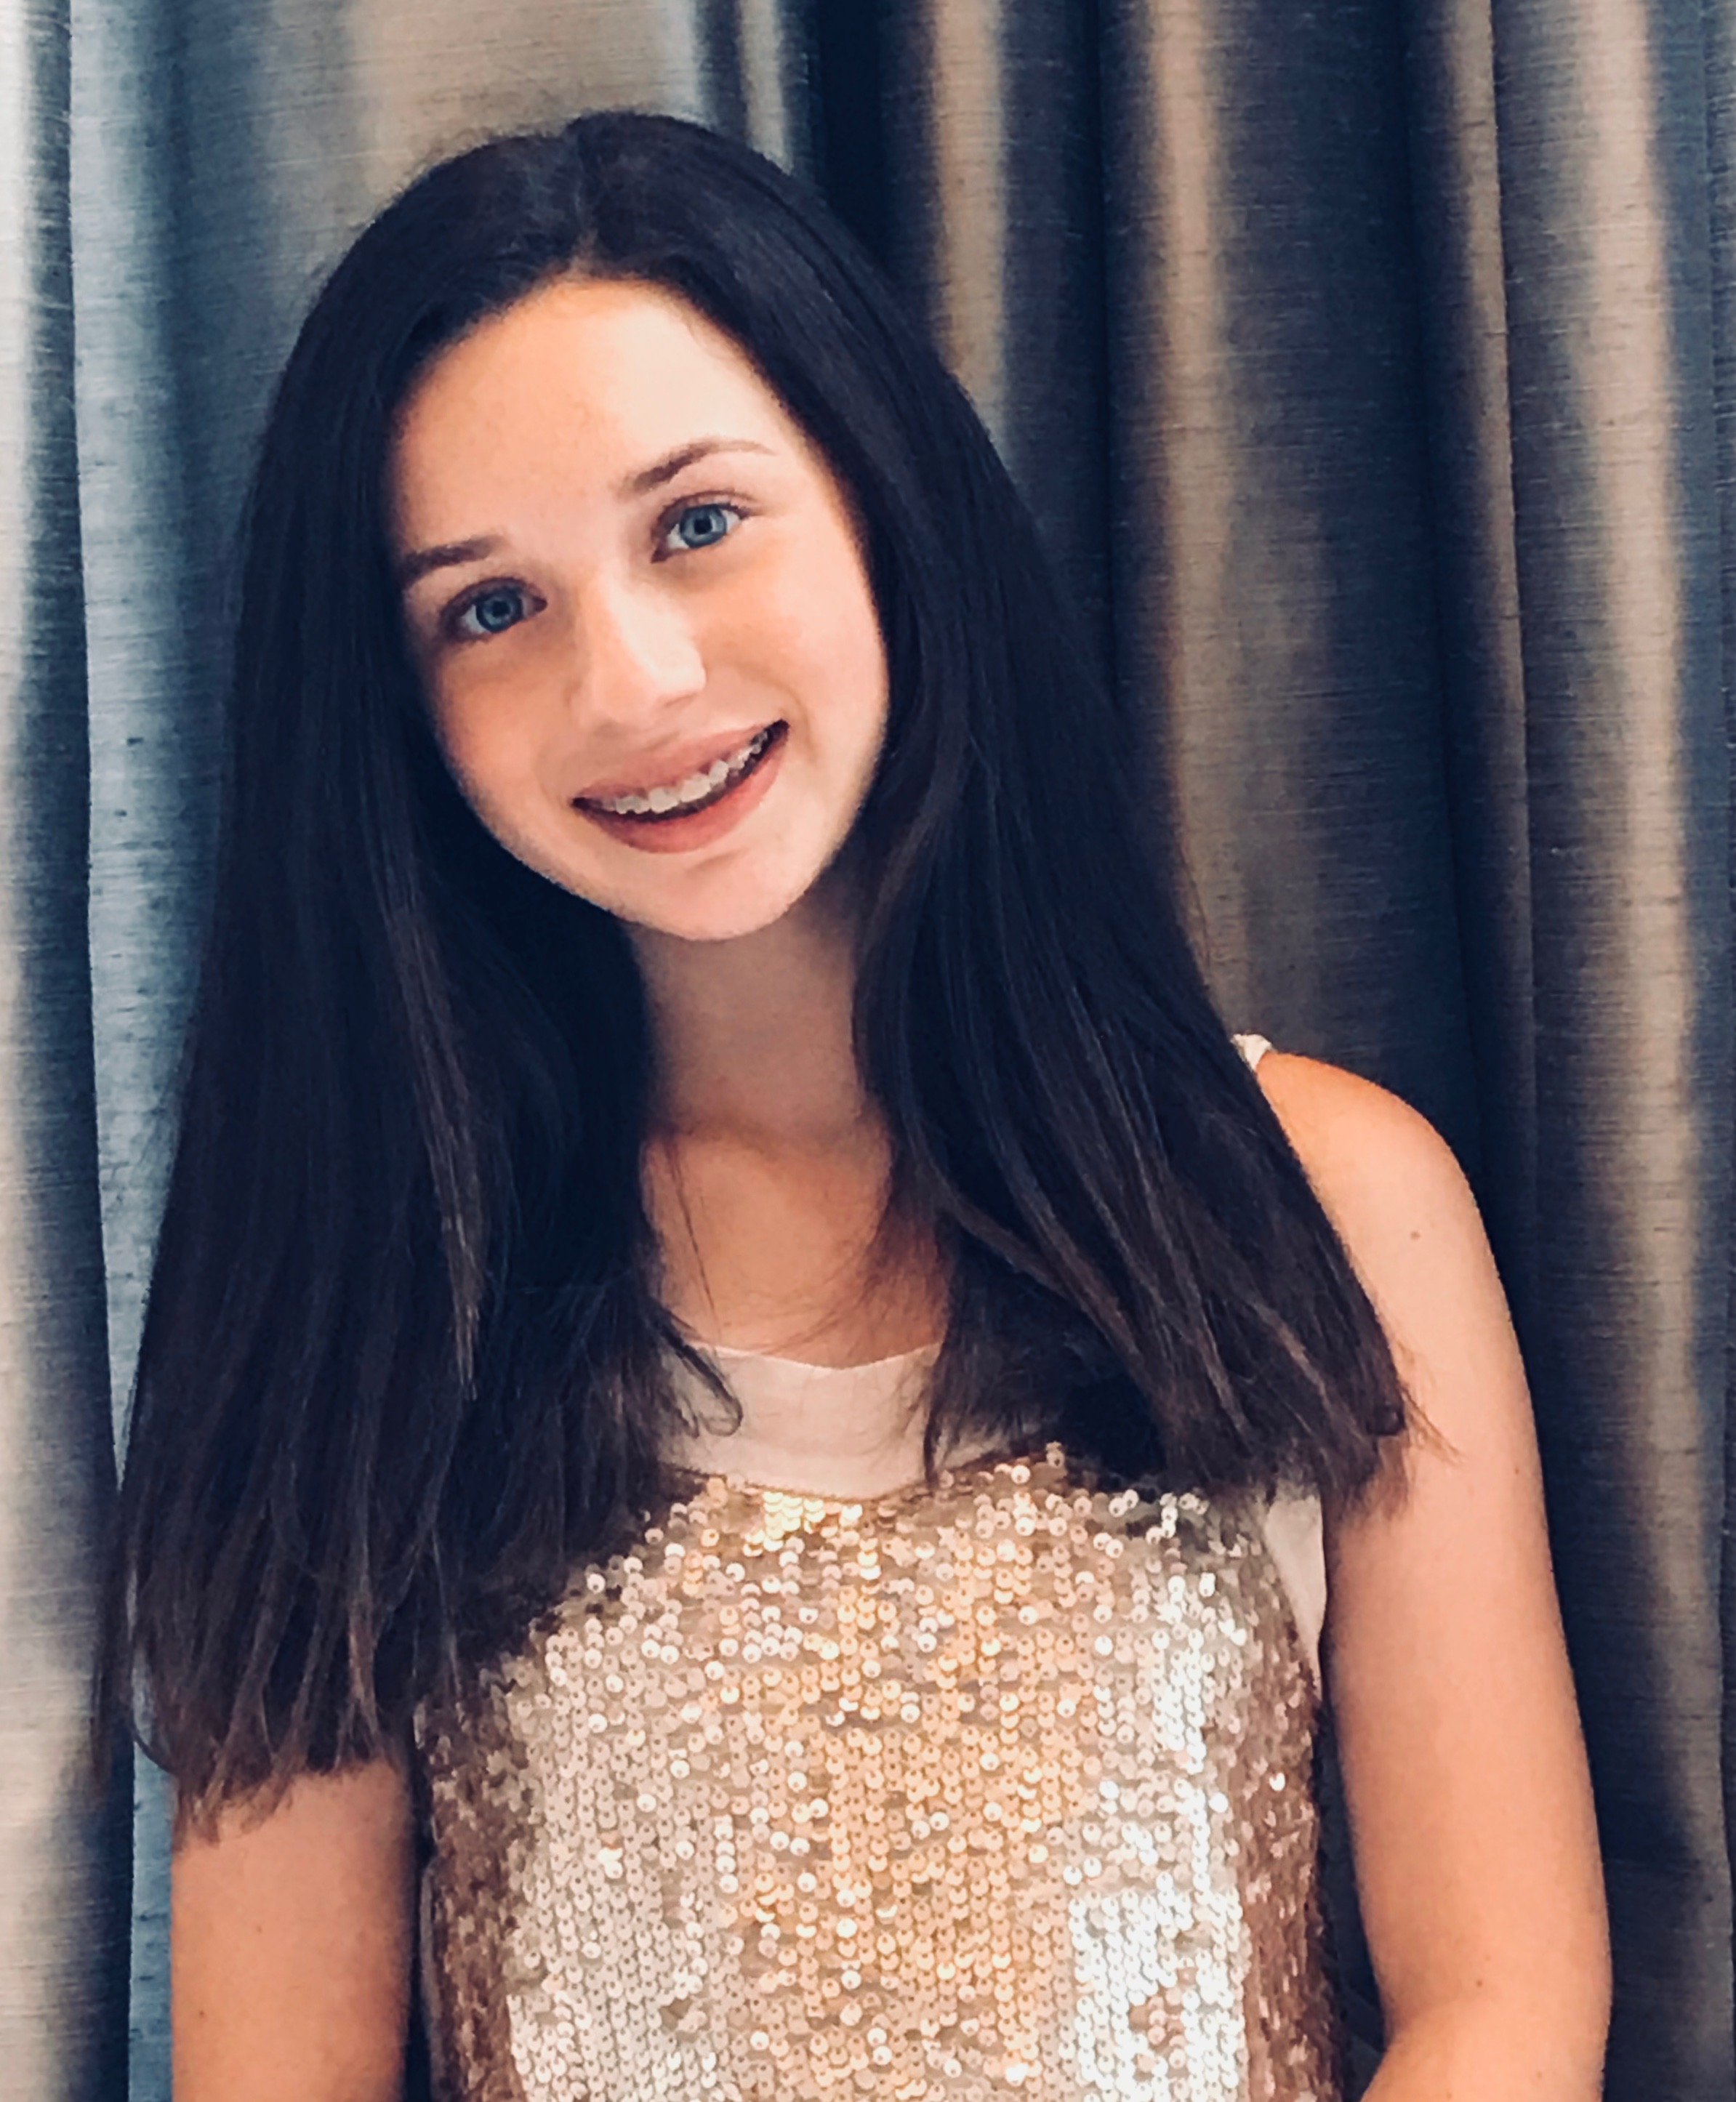 - Anna Abramov is in the 8th grade at MICDS. Musical theater is her passion. Her first role was in The Wizard of Oz as an munchkin when she was 6 years old, and she has been performing ever since. She also loves to read and rock climb.